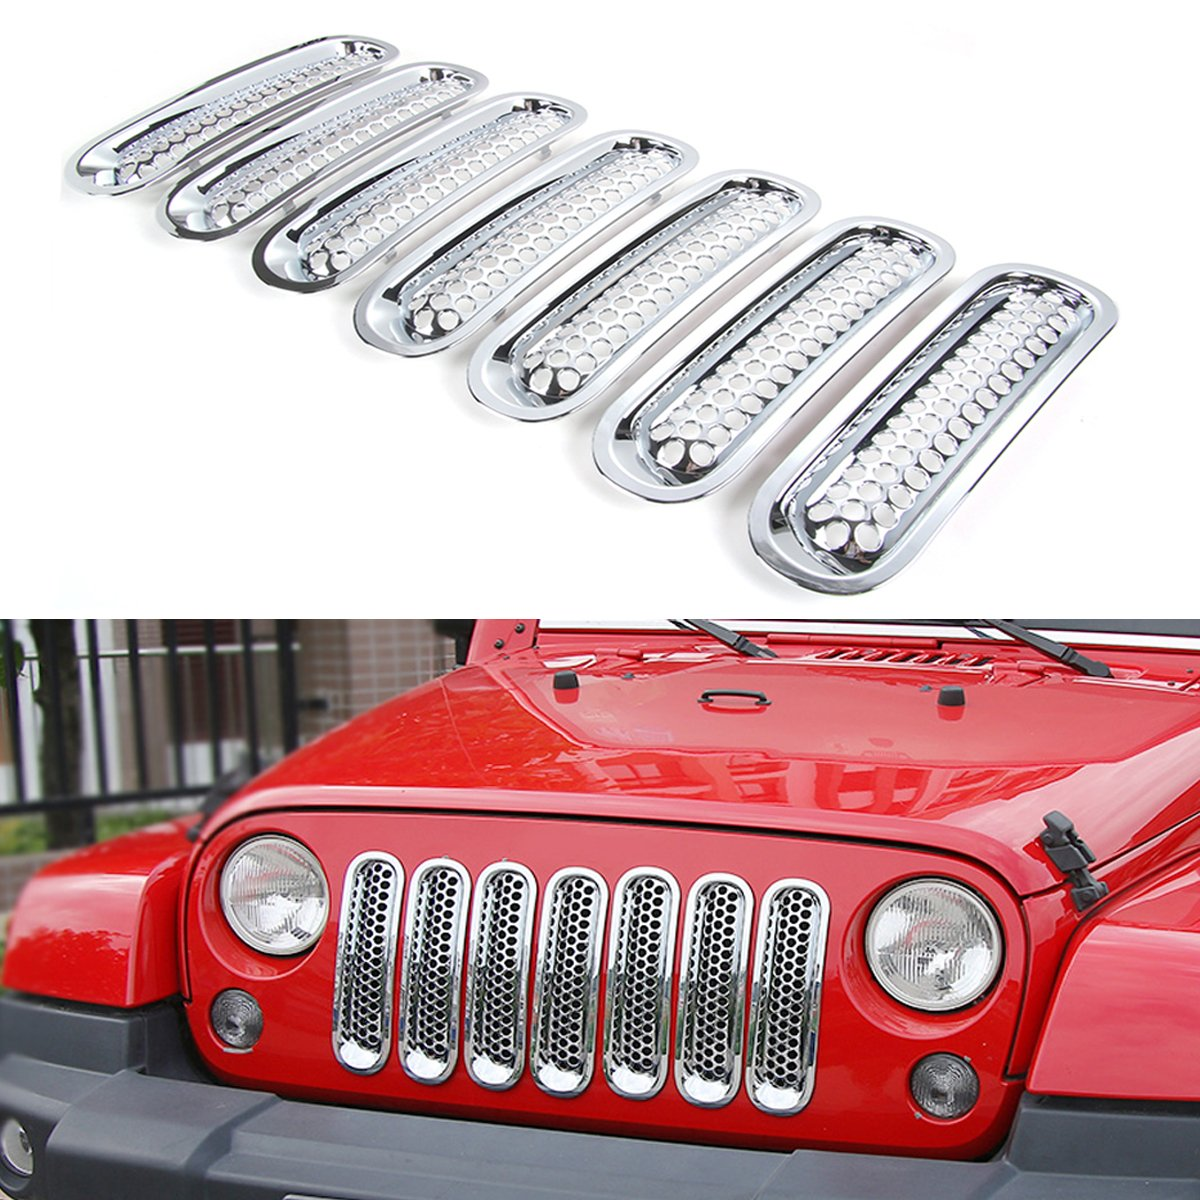 RT-TCZ Upgrade Version Clip-on Grille Front Mesh Grille Inserts For Jeep Wrangler 2007-2016 (Chrome)